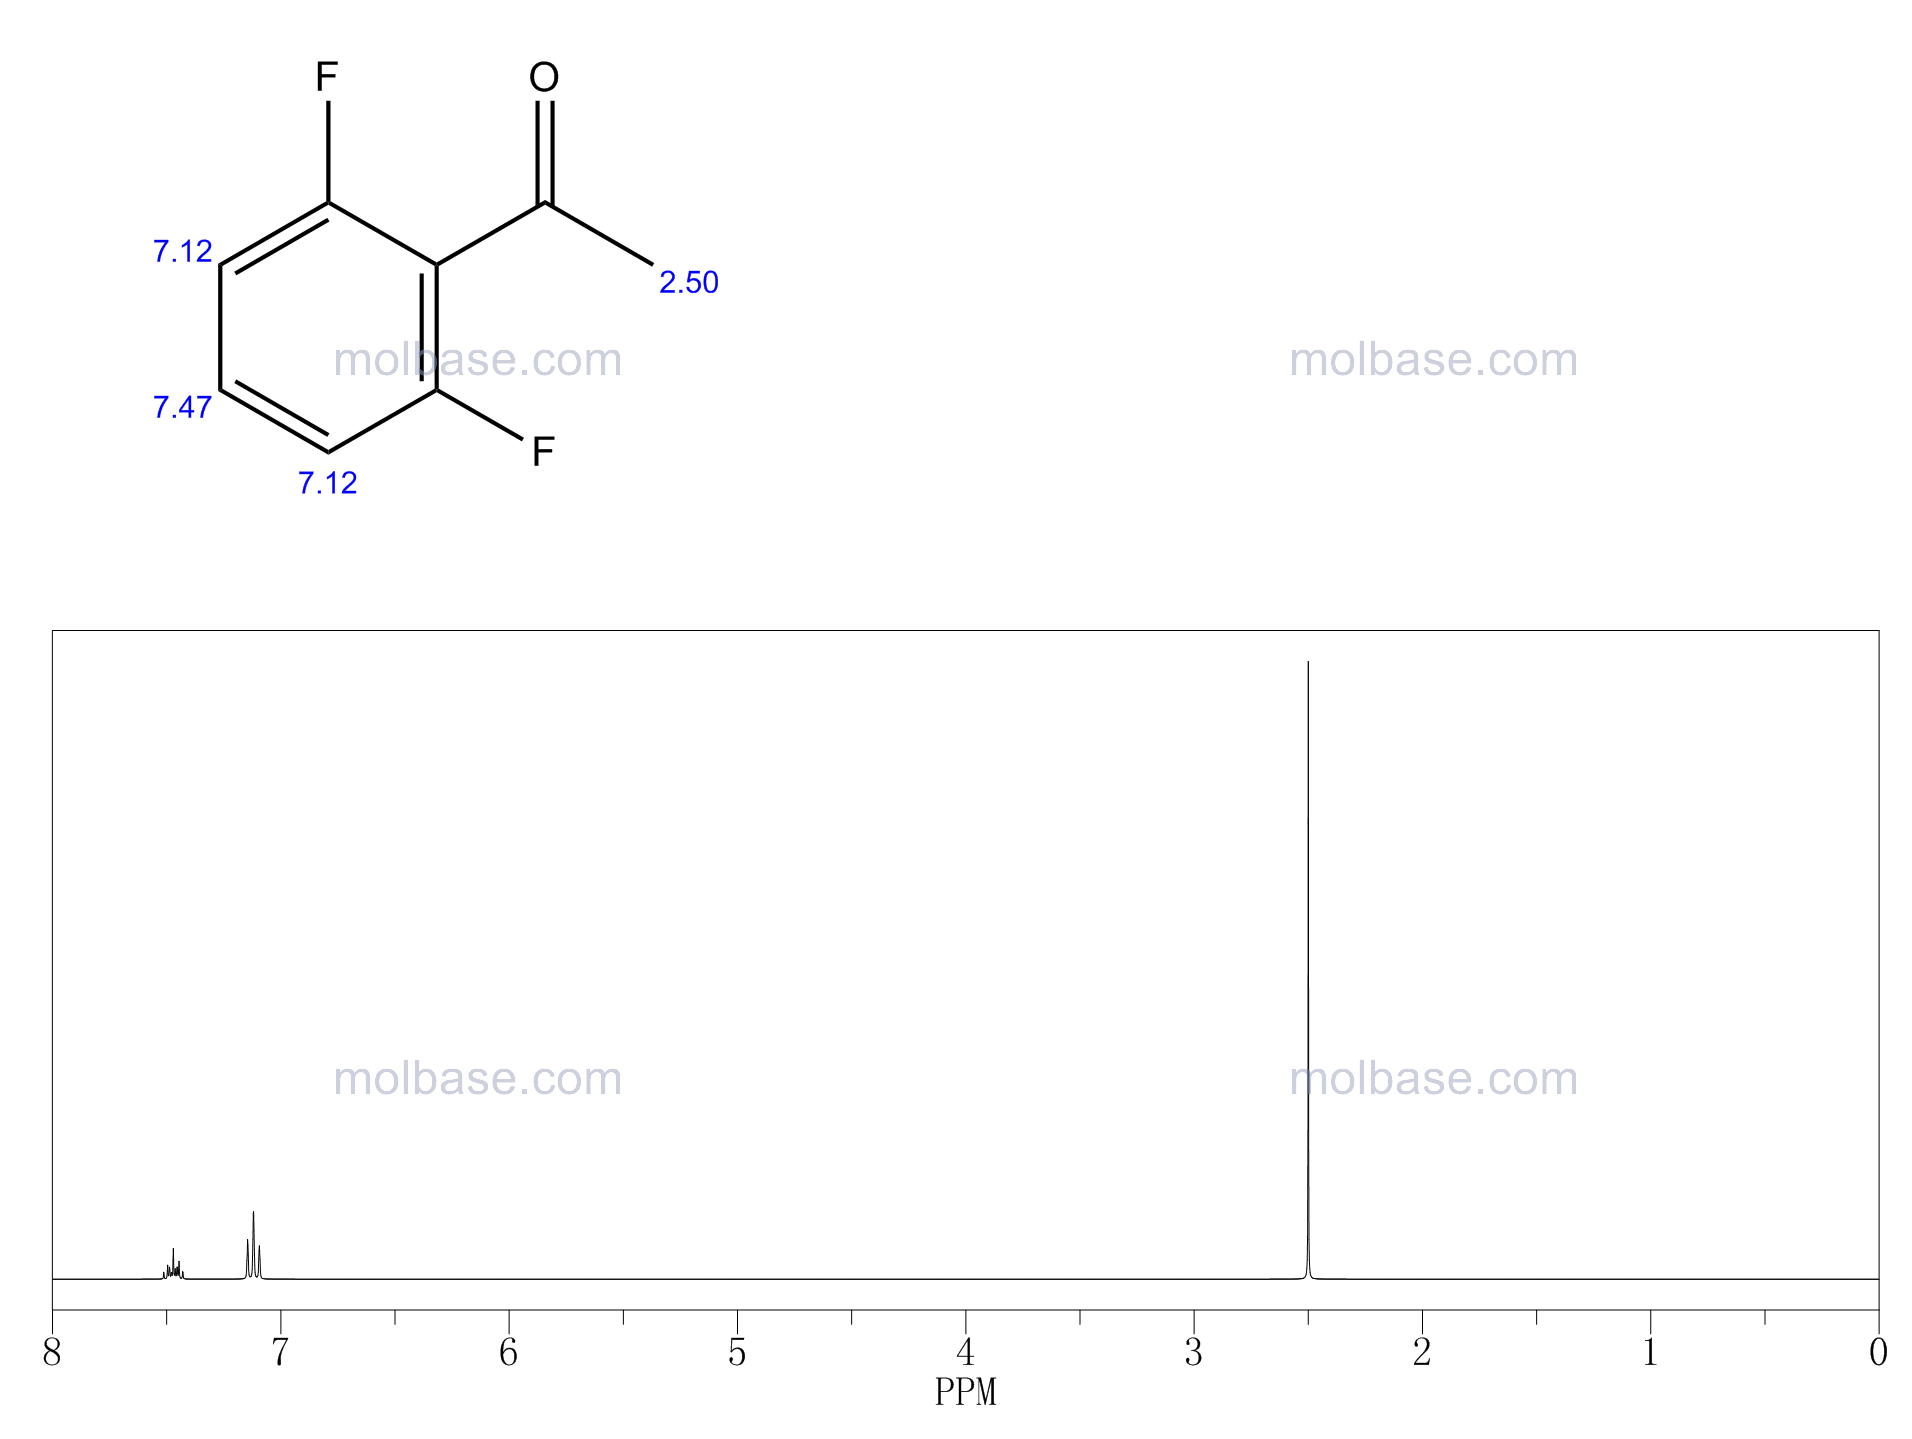 1-(2,6-Difluorophenyl)ethan-1-one NMR spectra analysis, Chemical CAS NO. 13670-99-0 NMR spectral analysis, 1-(2,6-Difluorophenyl)ethan-1-one C-NMR spectrum